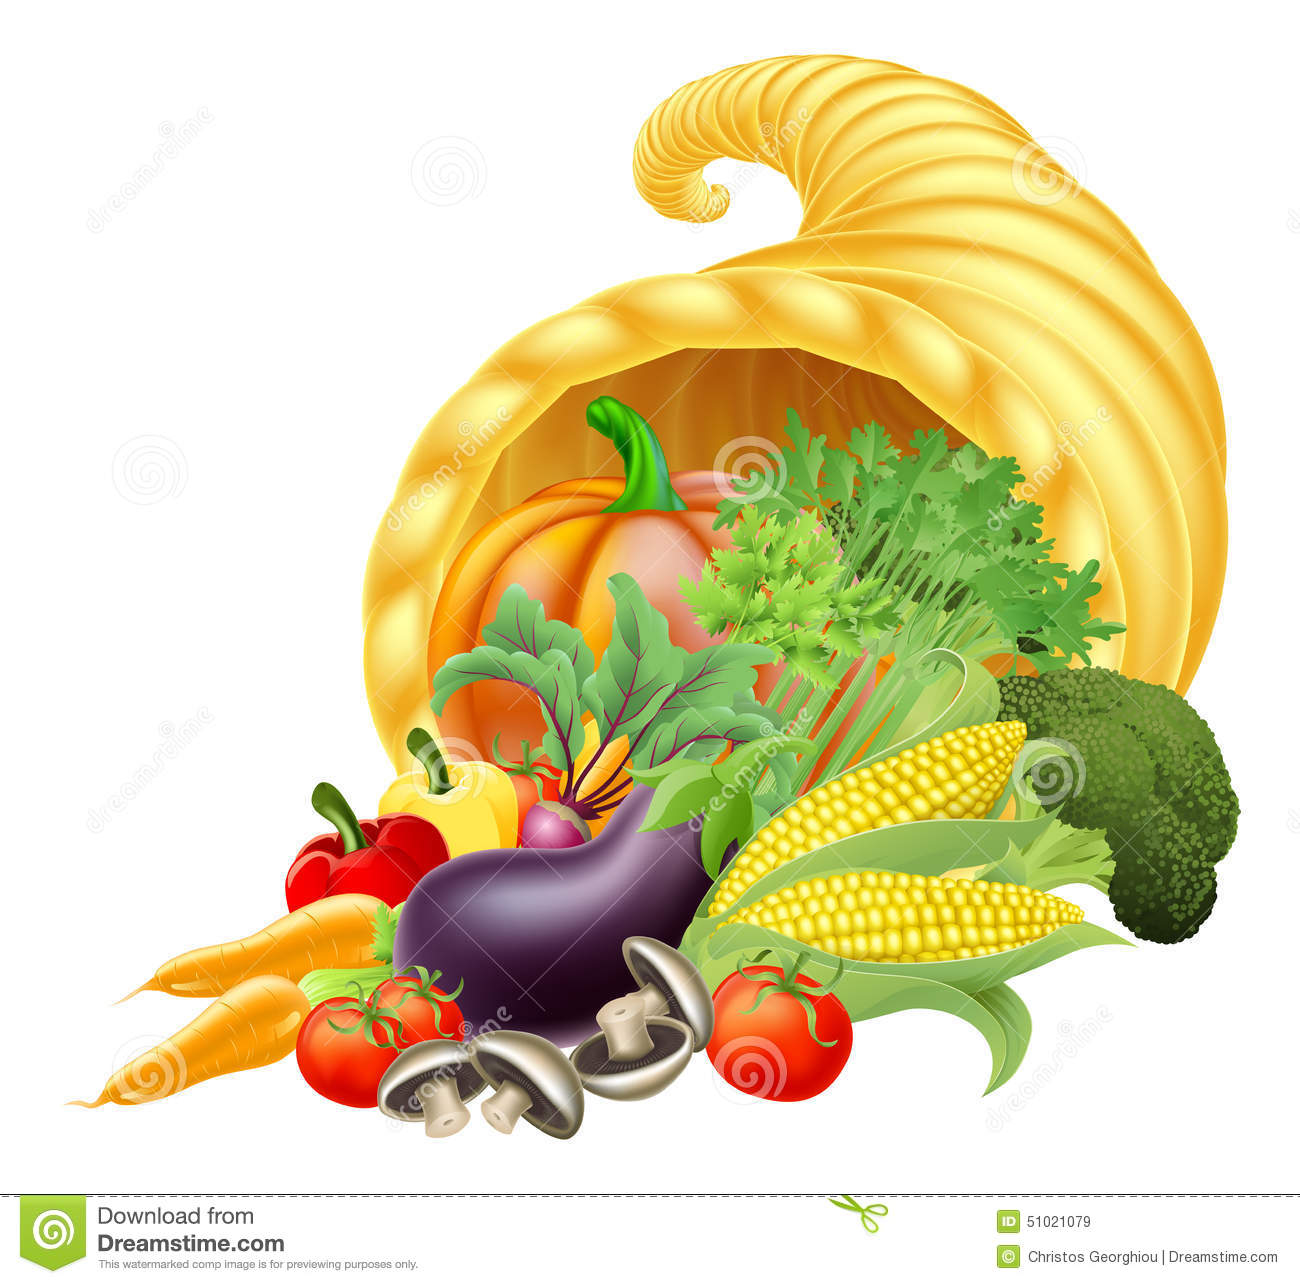 cornucopia stock vector illustration of cartoon